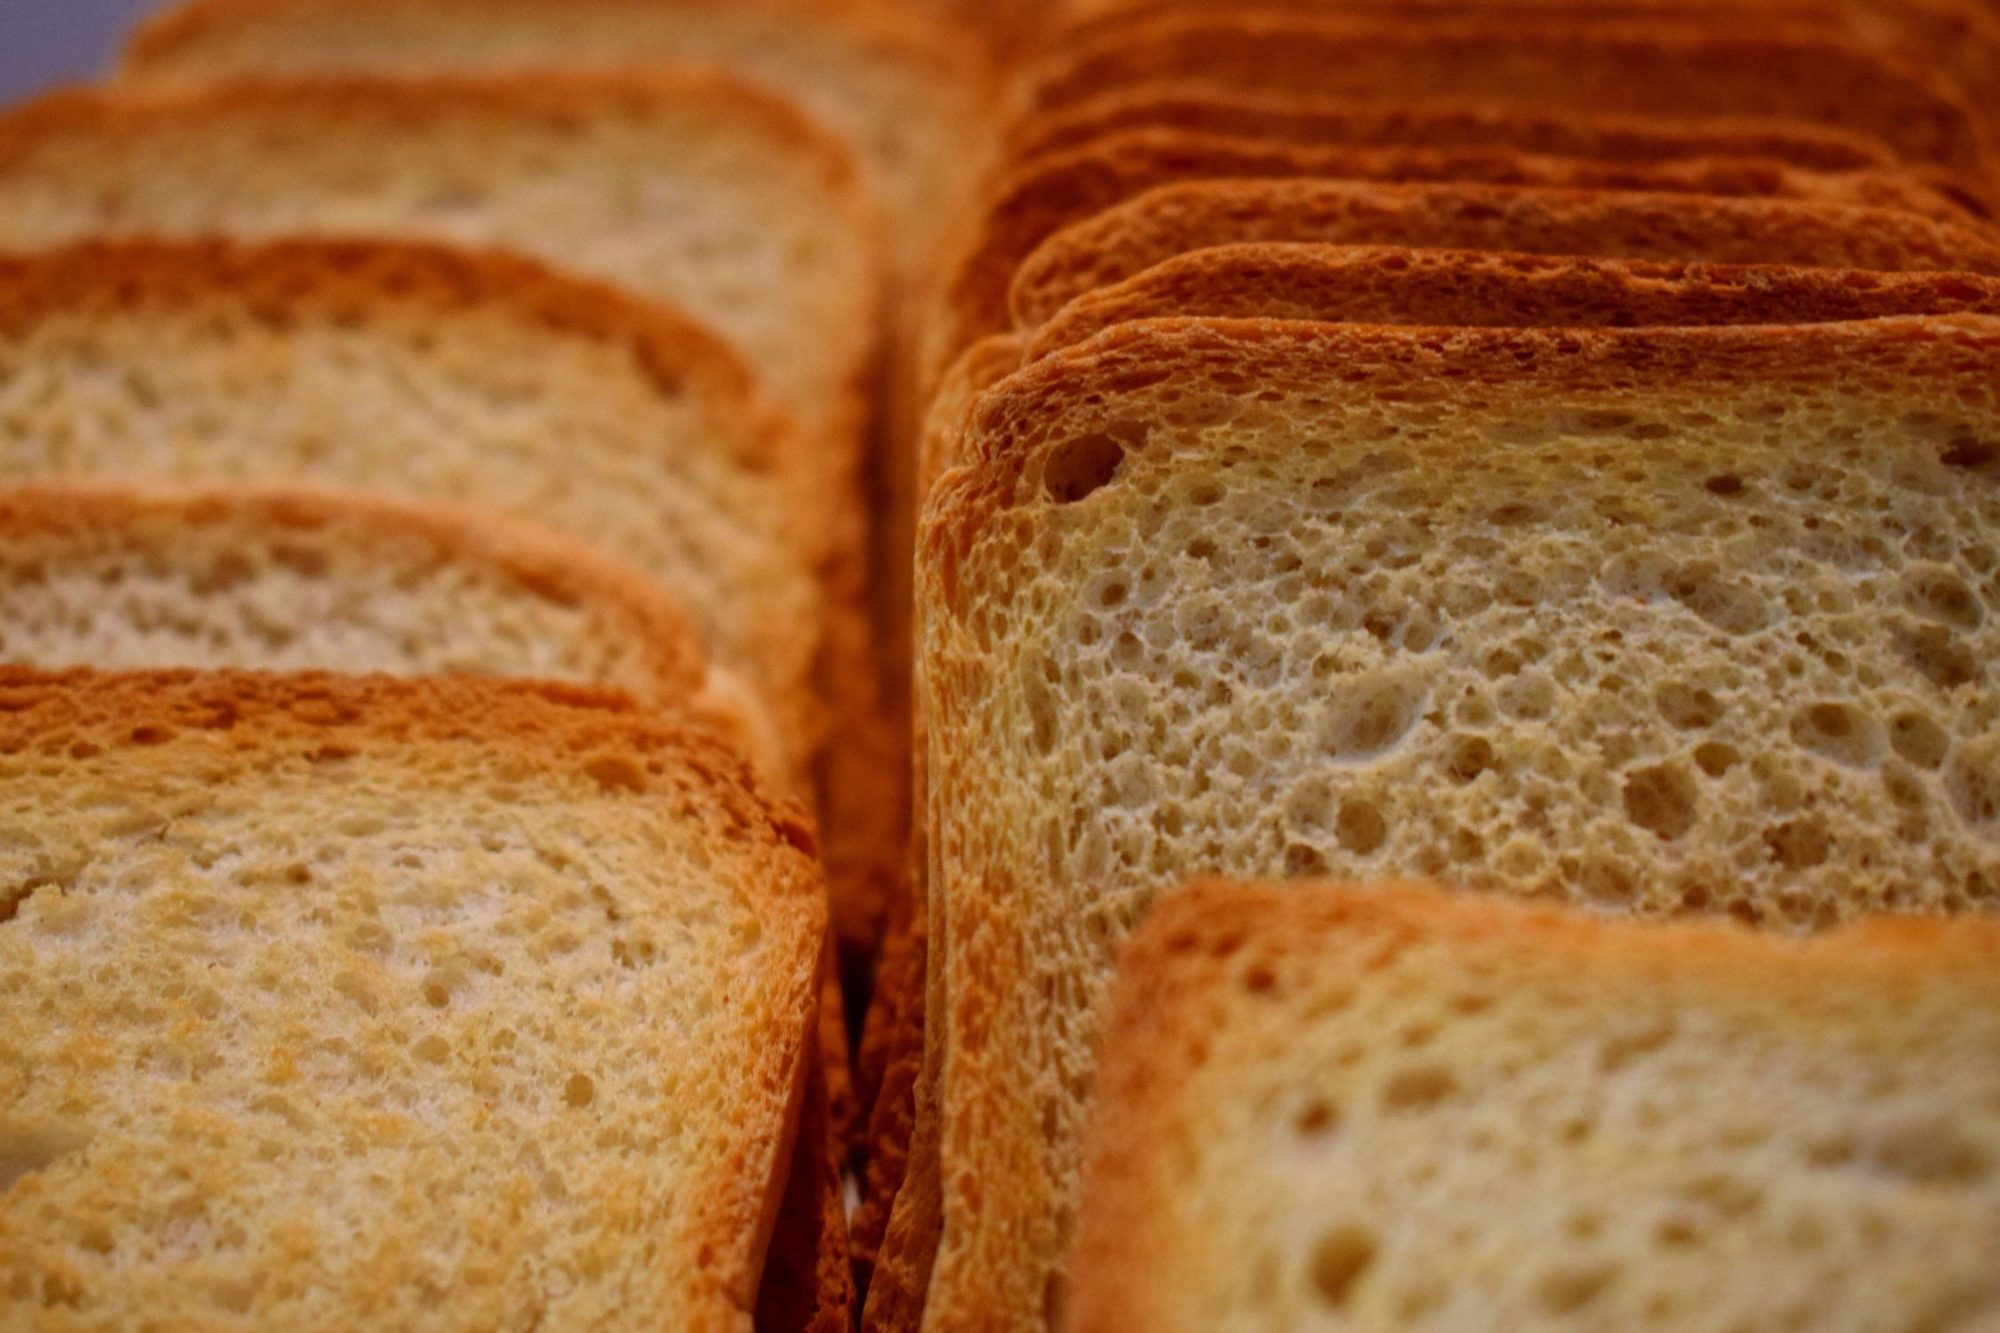 EC: Eat More Toast, Live More Days